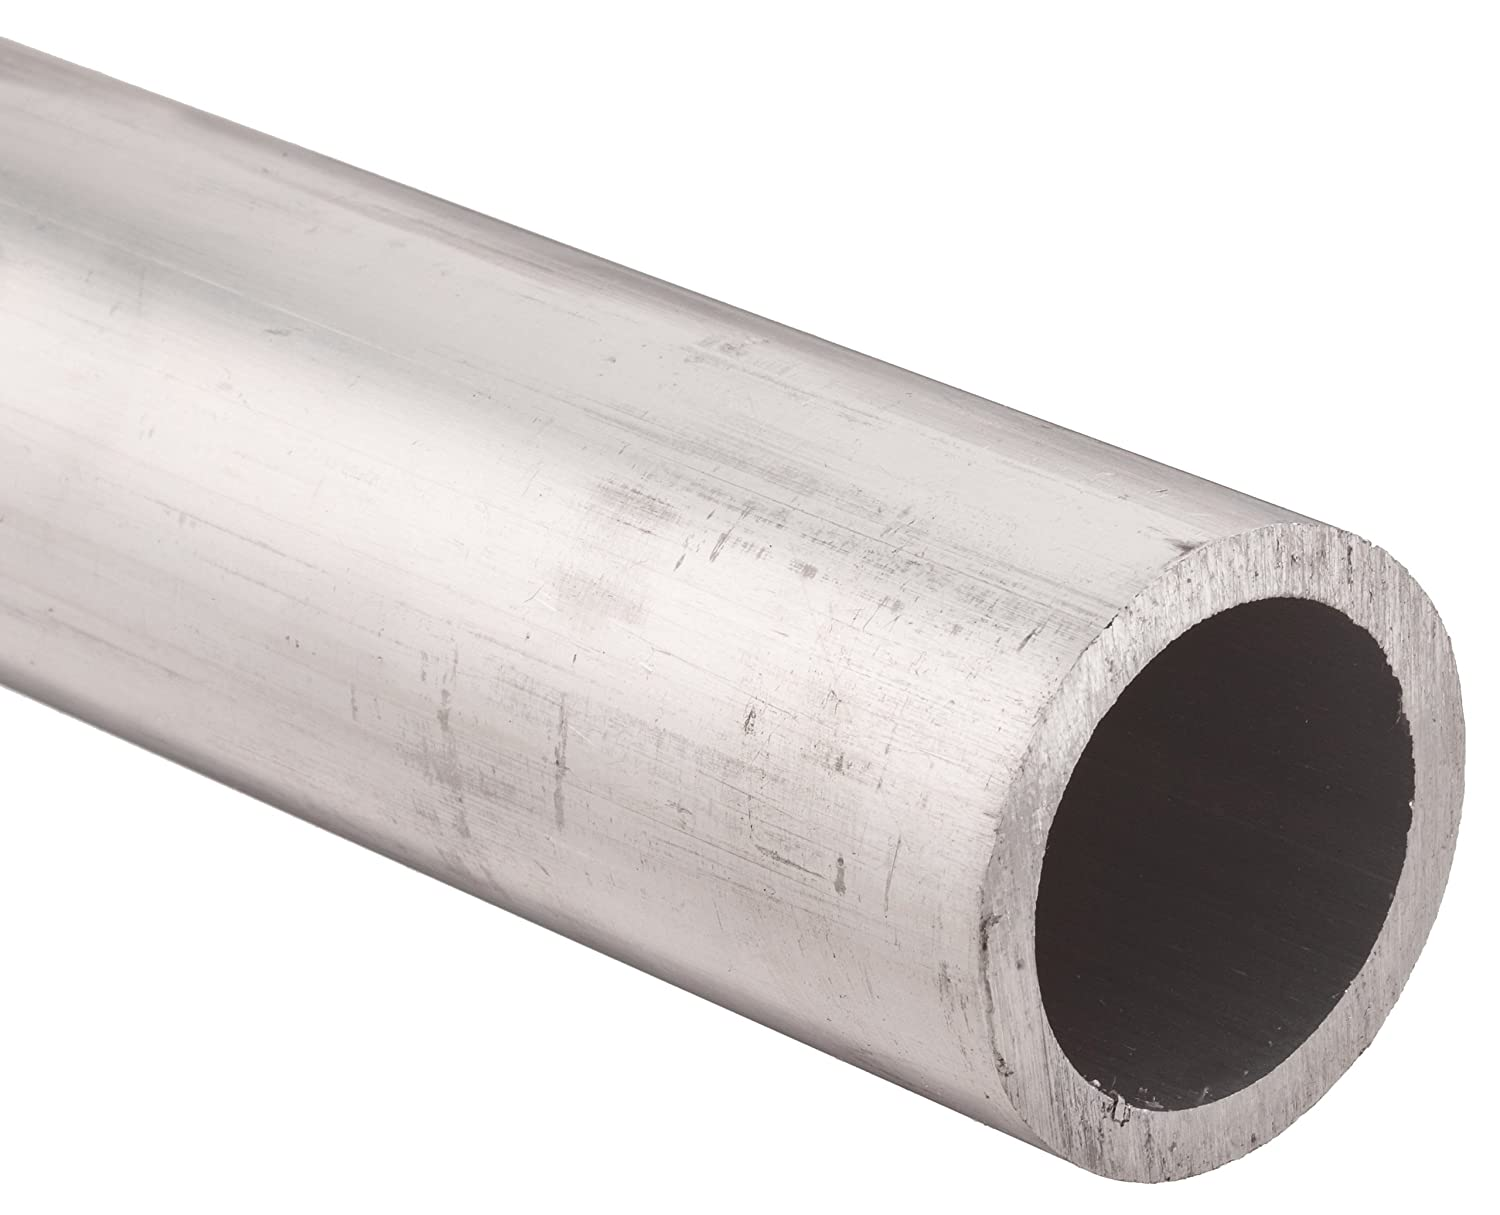 Aluminum 6061-T6 Extruded Round Tubing 2-0.25 OD 0.25 Wall 1.75 ID ASTM B210 12 Length